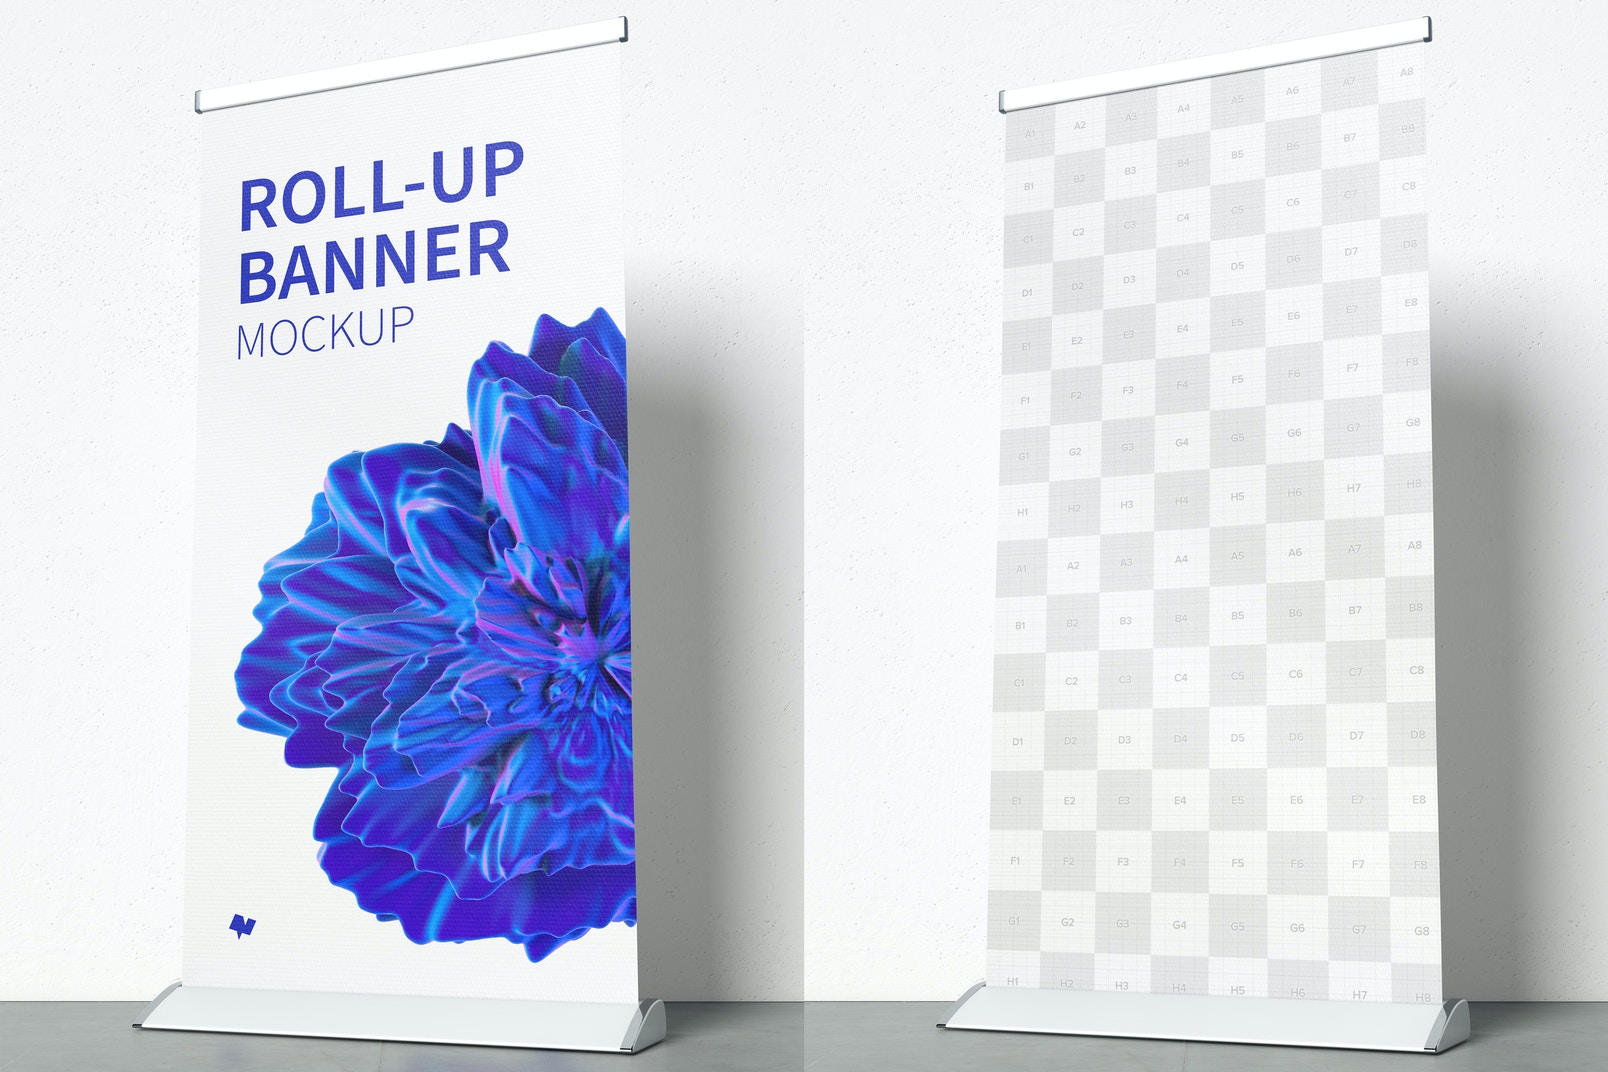 Rollup banner mockup with 1x2 mt in hight resolution (5K)